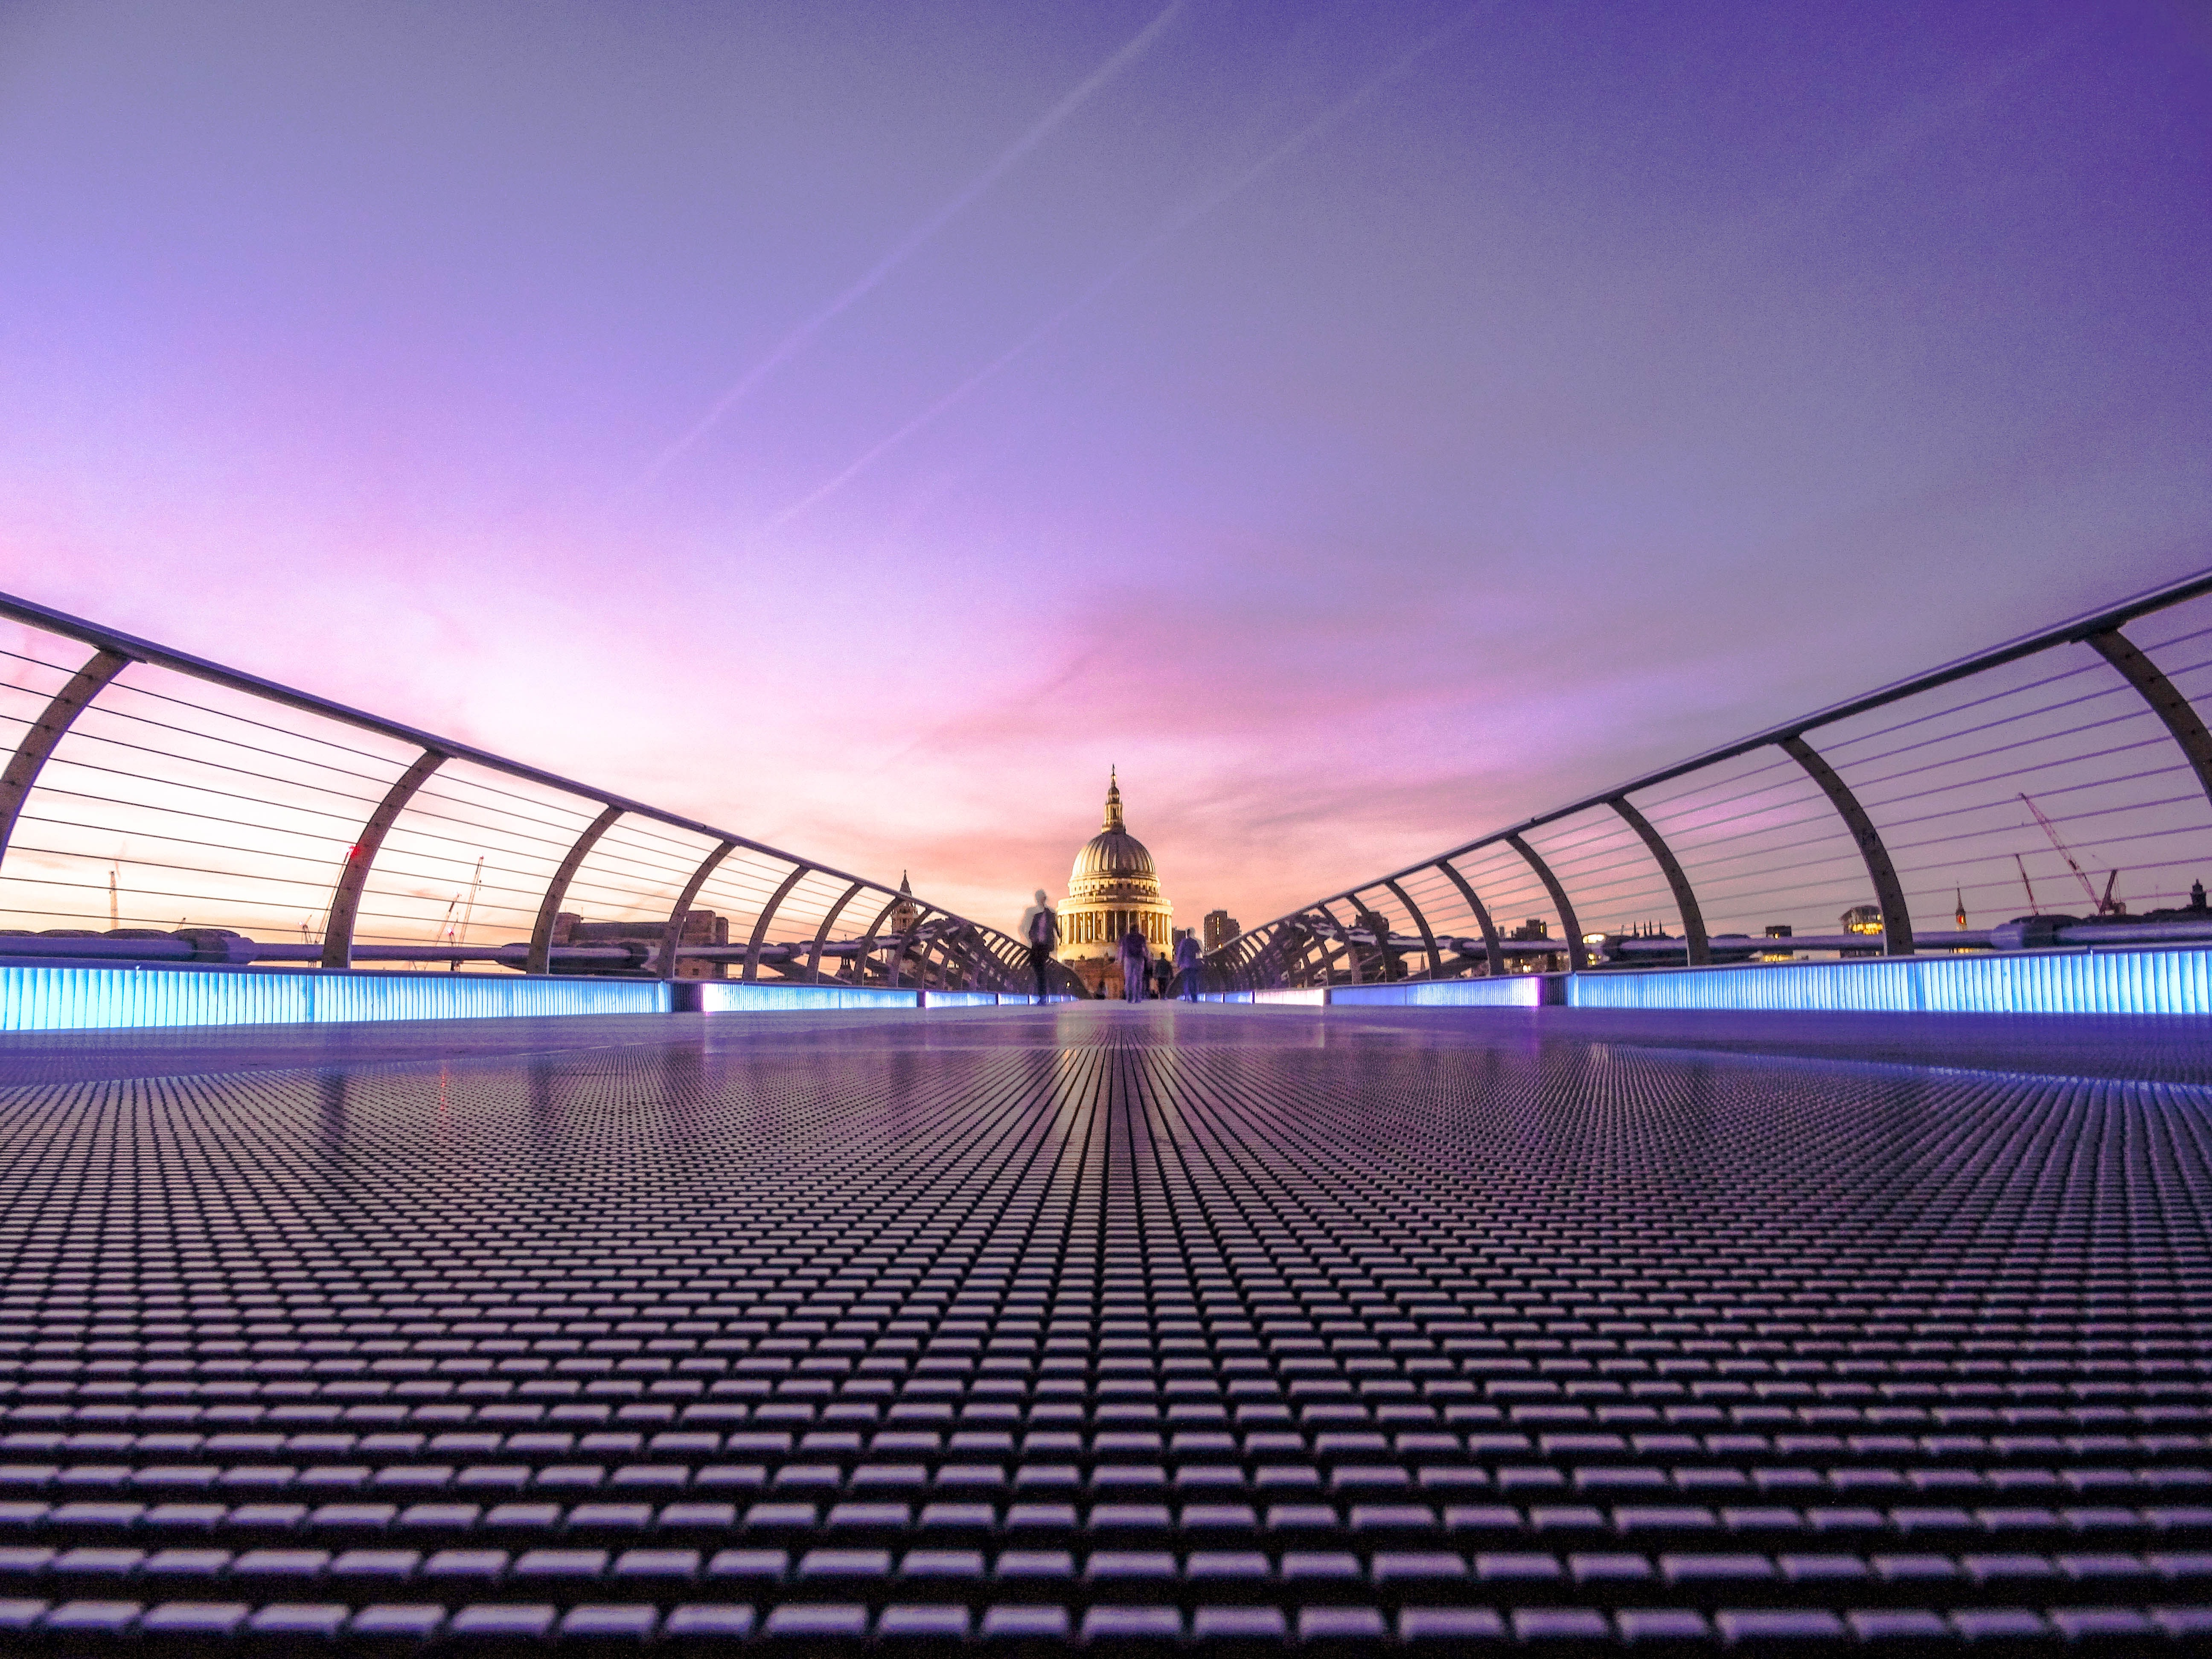 A low shot of people on the Millennium Bridge in London with a view on St. Paul's Cathedral